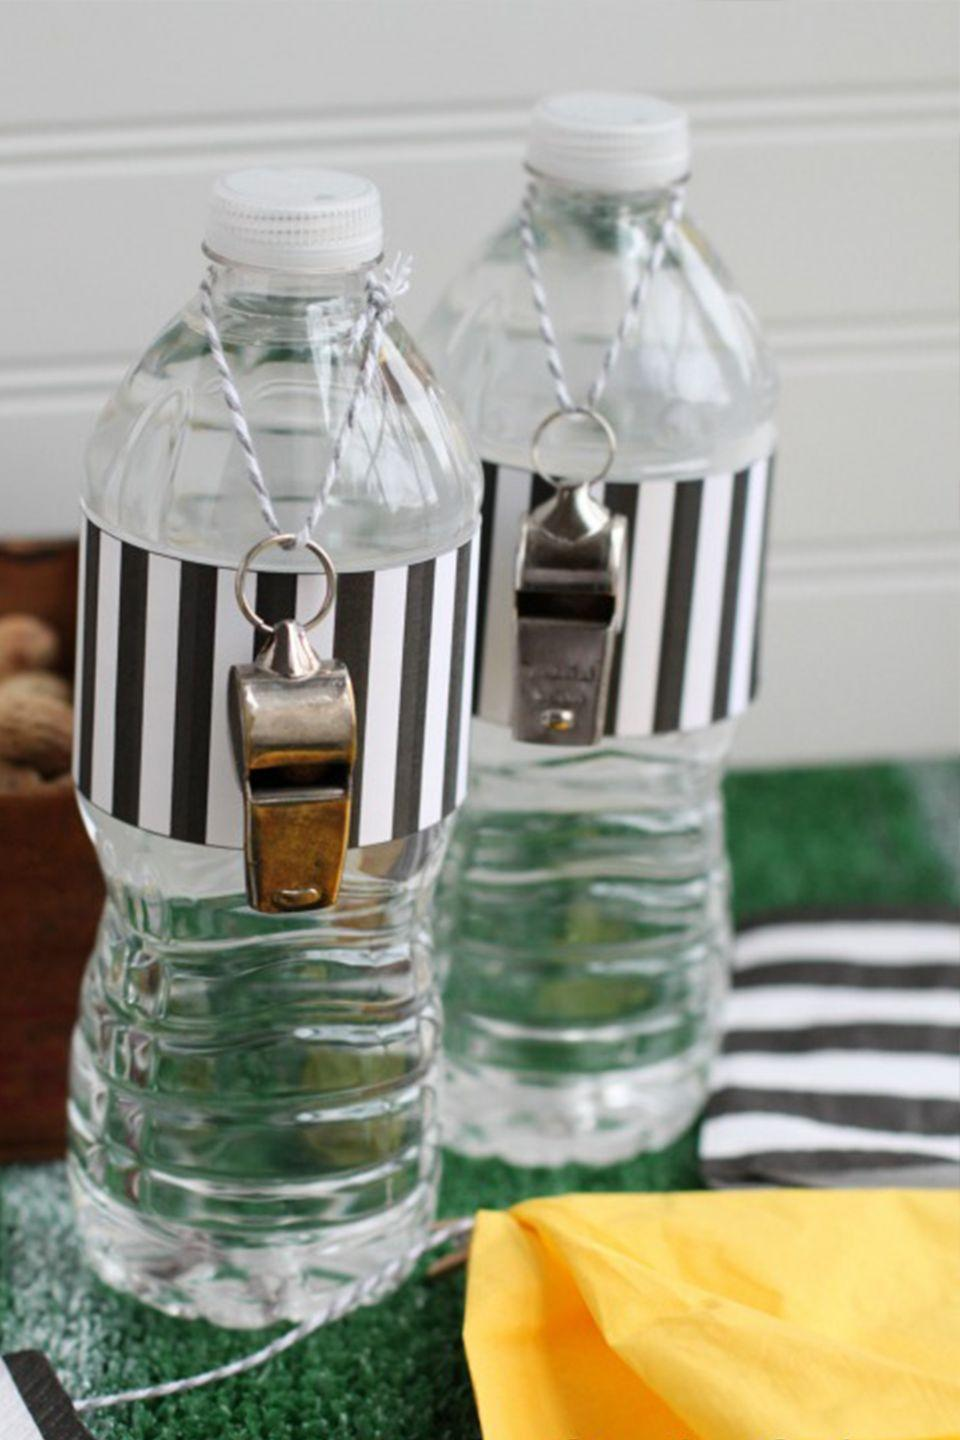 "<p>Even water gets to dress up for the Super Bowl, thanks to these cute labels.<br></p><p><em><a href=""http://www.threelittlemonkeysstudio.com/10-free-football-printables-get-together/"" rel=""nofollow noopener"" target=""_blank"" data-ylk=""slk:Get the printables at Three Little Monkeys Studio »"" class=""link rapid-noclick-resp"">Get the printables at Three Little Monkeys Studio »</a></em> </p><p><a class=""link rapid-noclick-resp"" href=""https://www.amazon.com/Hipat-Whistle-Whistles-Referees-Officials/dp/B07QWRP934/?tag=syn-yahoo-20&ascsubtag=%5Bartid%7C10055.g.4949%5Bsrc%7Cyahoo-us"" rel=""nofollow noopener"" target=""_blank"" data-ylk=""slk:SHOP WHISTLES"">SHOP WHISTLES</a></p>"